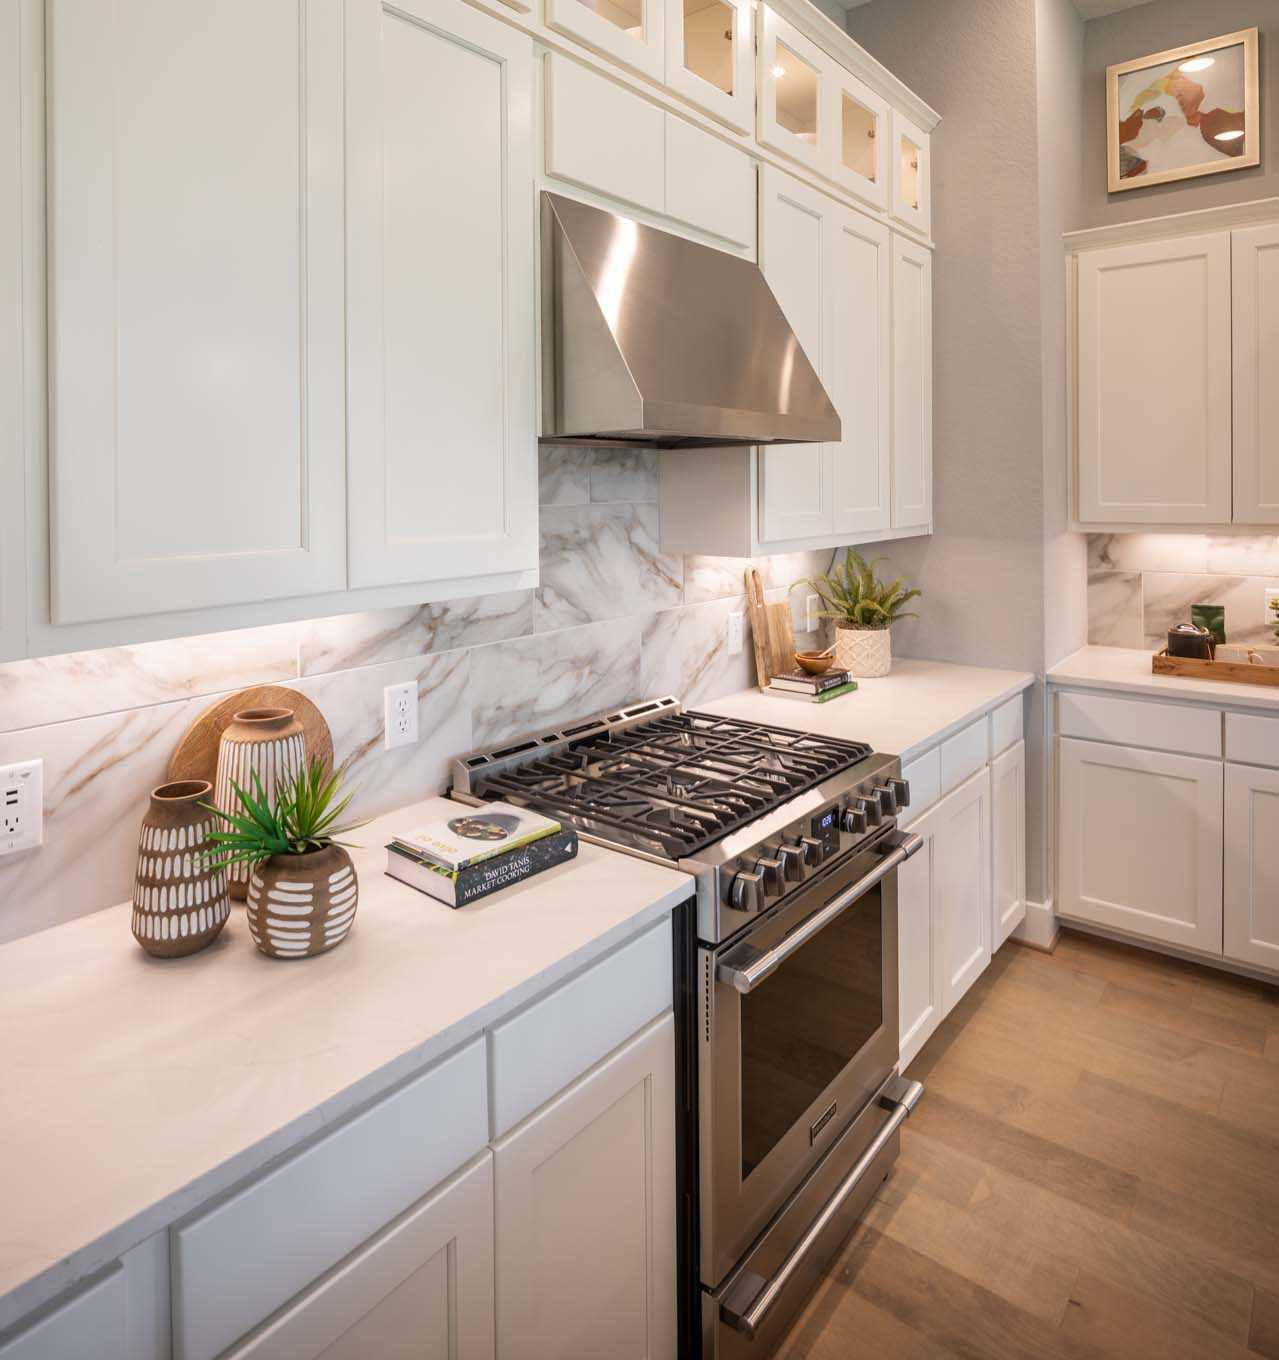 Kitchen featured in the Plan Davenport By Highland Homes in Austin, TX